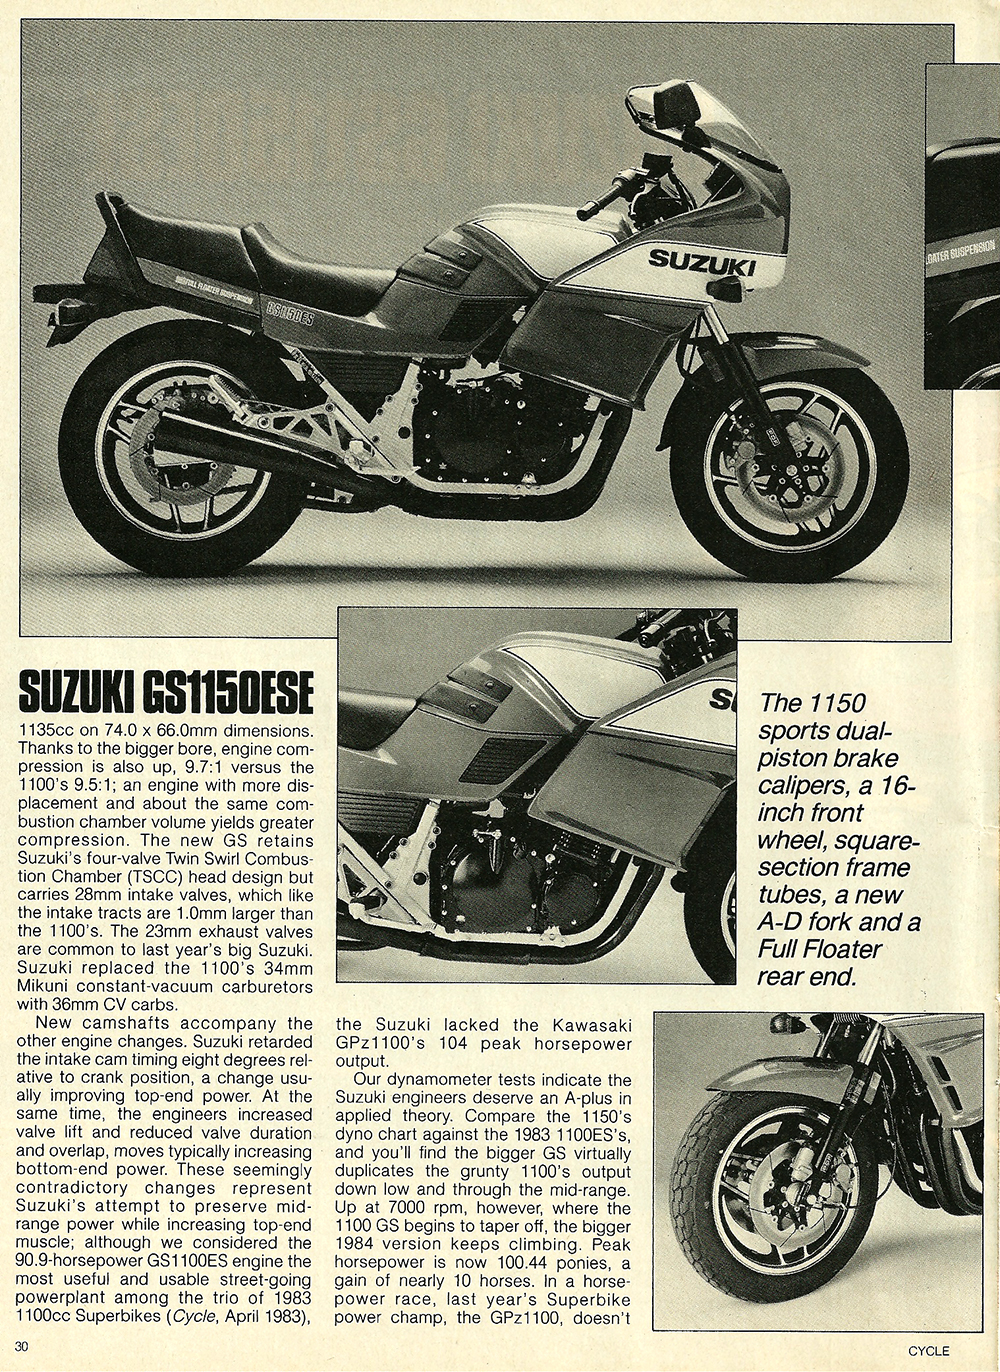 1984 Suzuki GS1150ESE road test 3.jpg